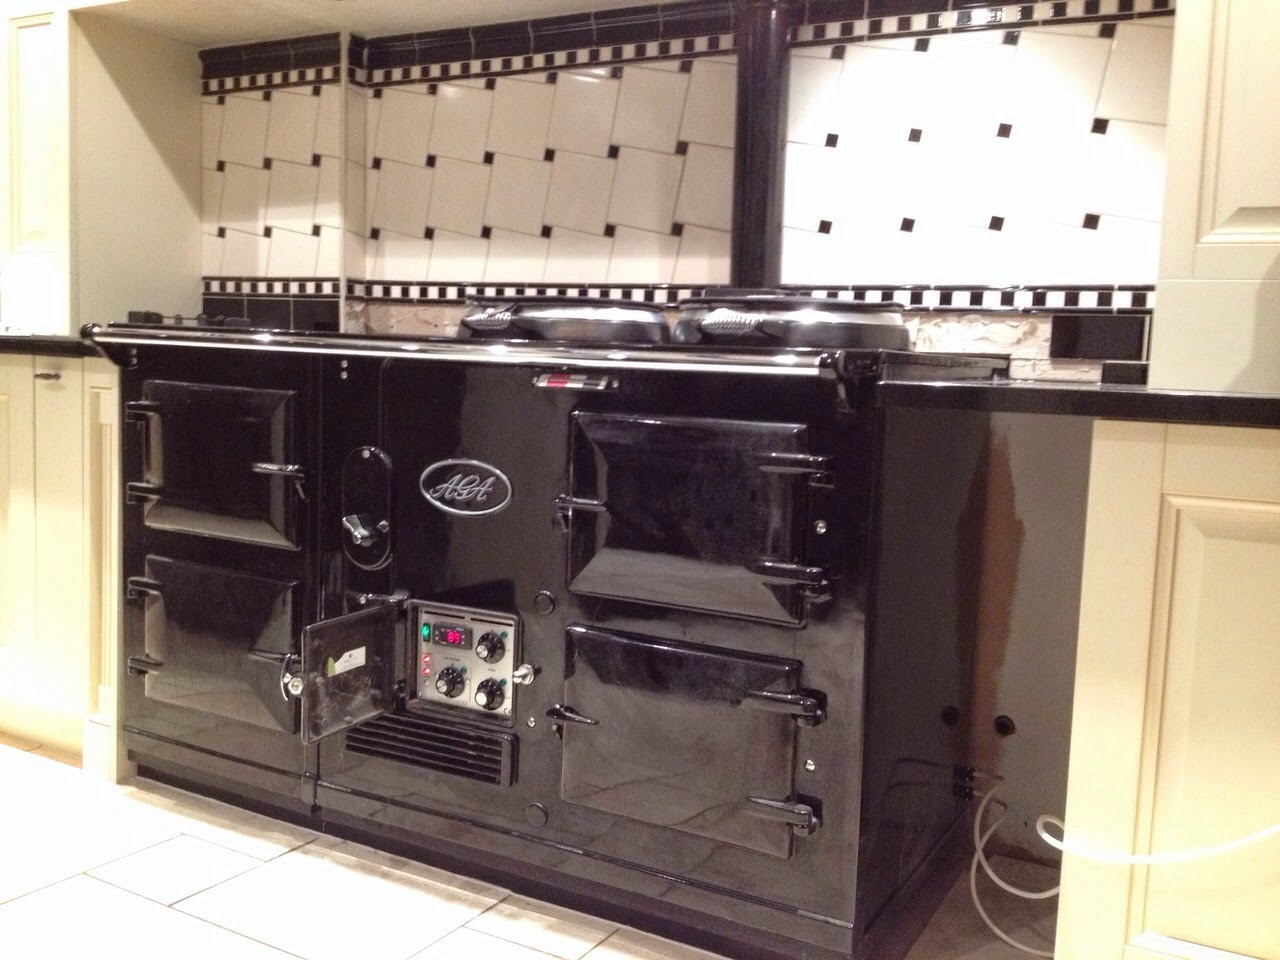 This black AGA Standard is now converted from oil to electricity with the help of the Electrickit solution.